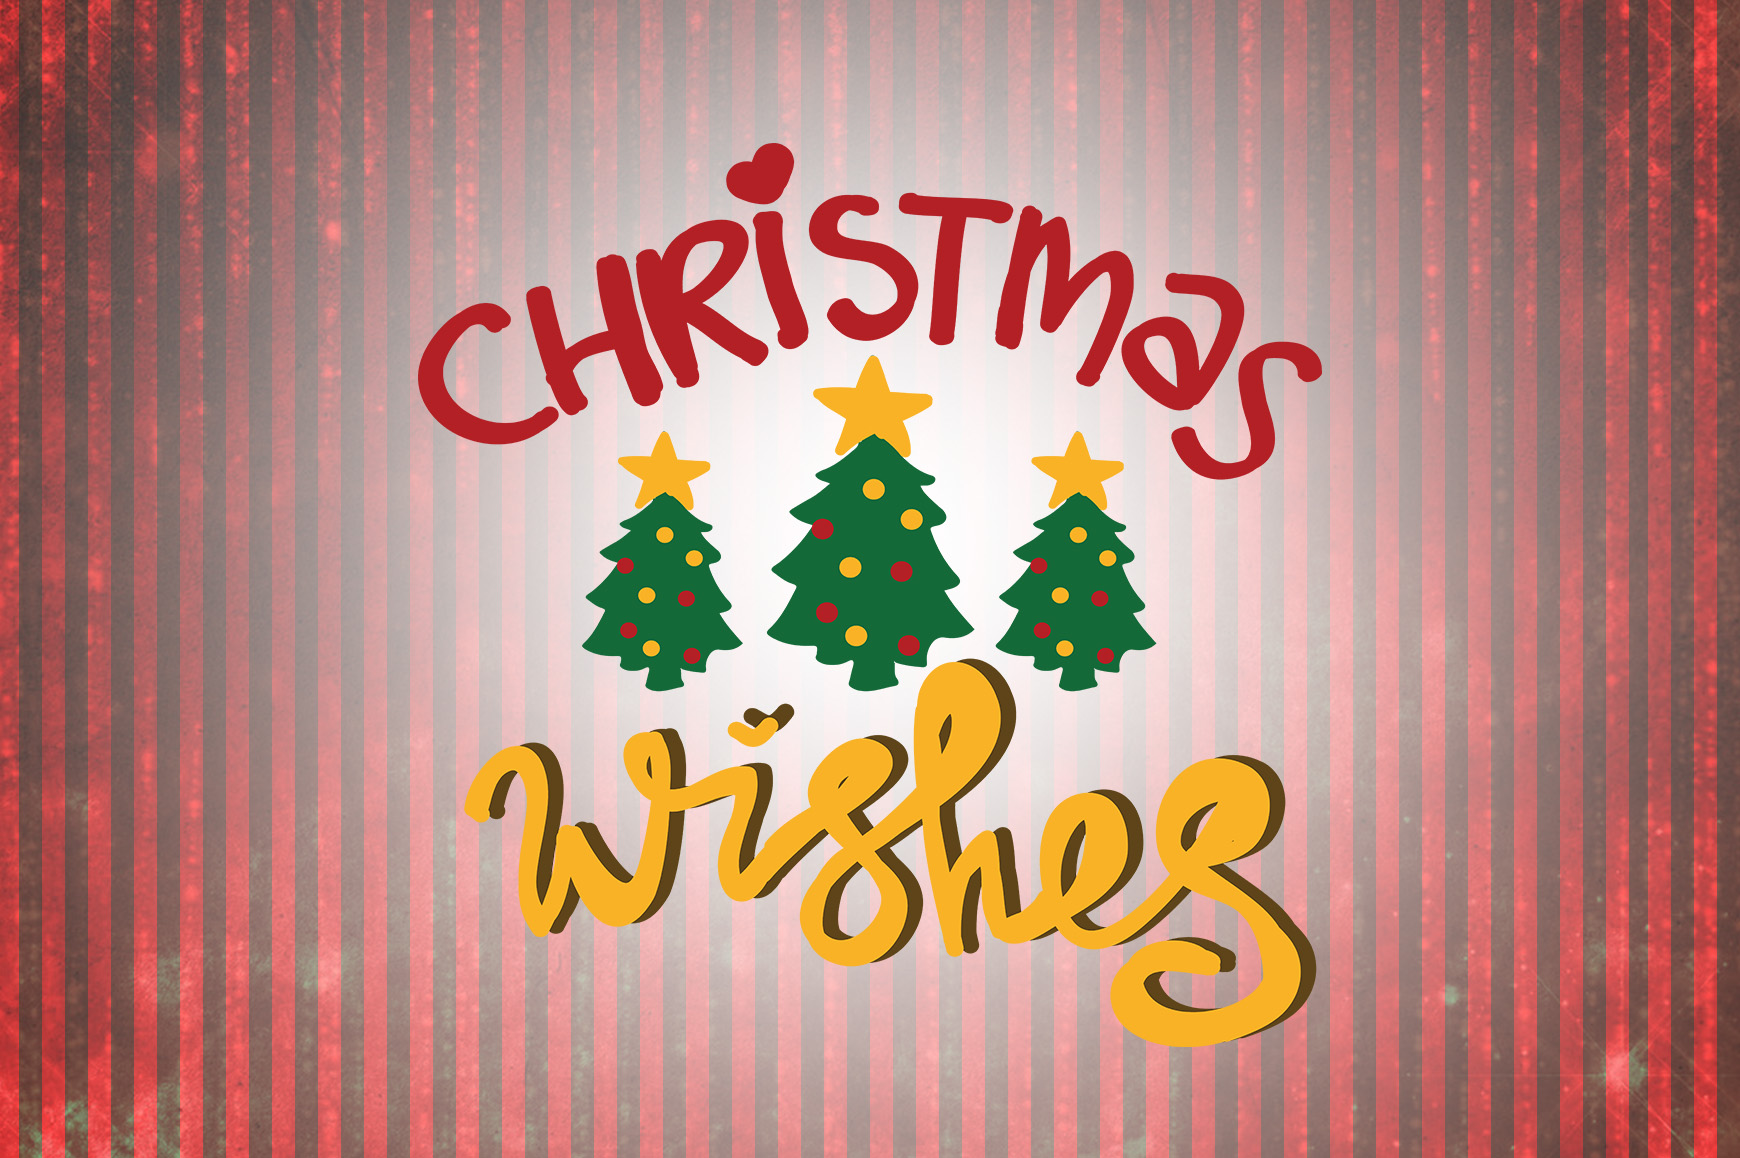 Download Free Christmas Wishes Christmas Quotes Graphic By Wienscollection for Cricut Explore, Silhouette and other cutting machines.